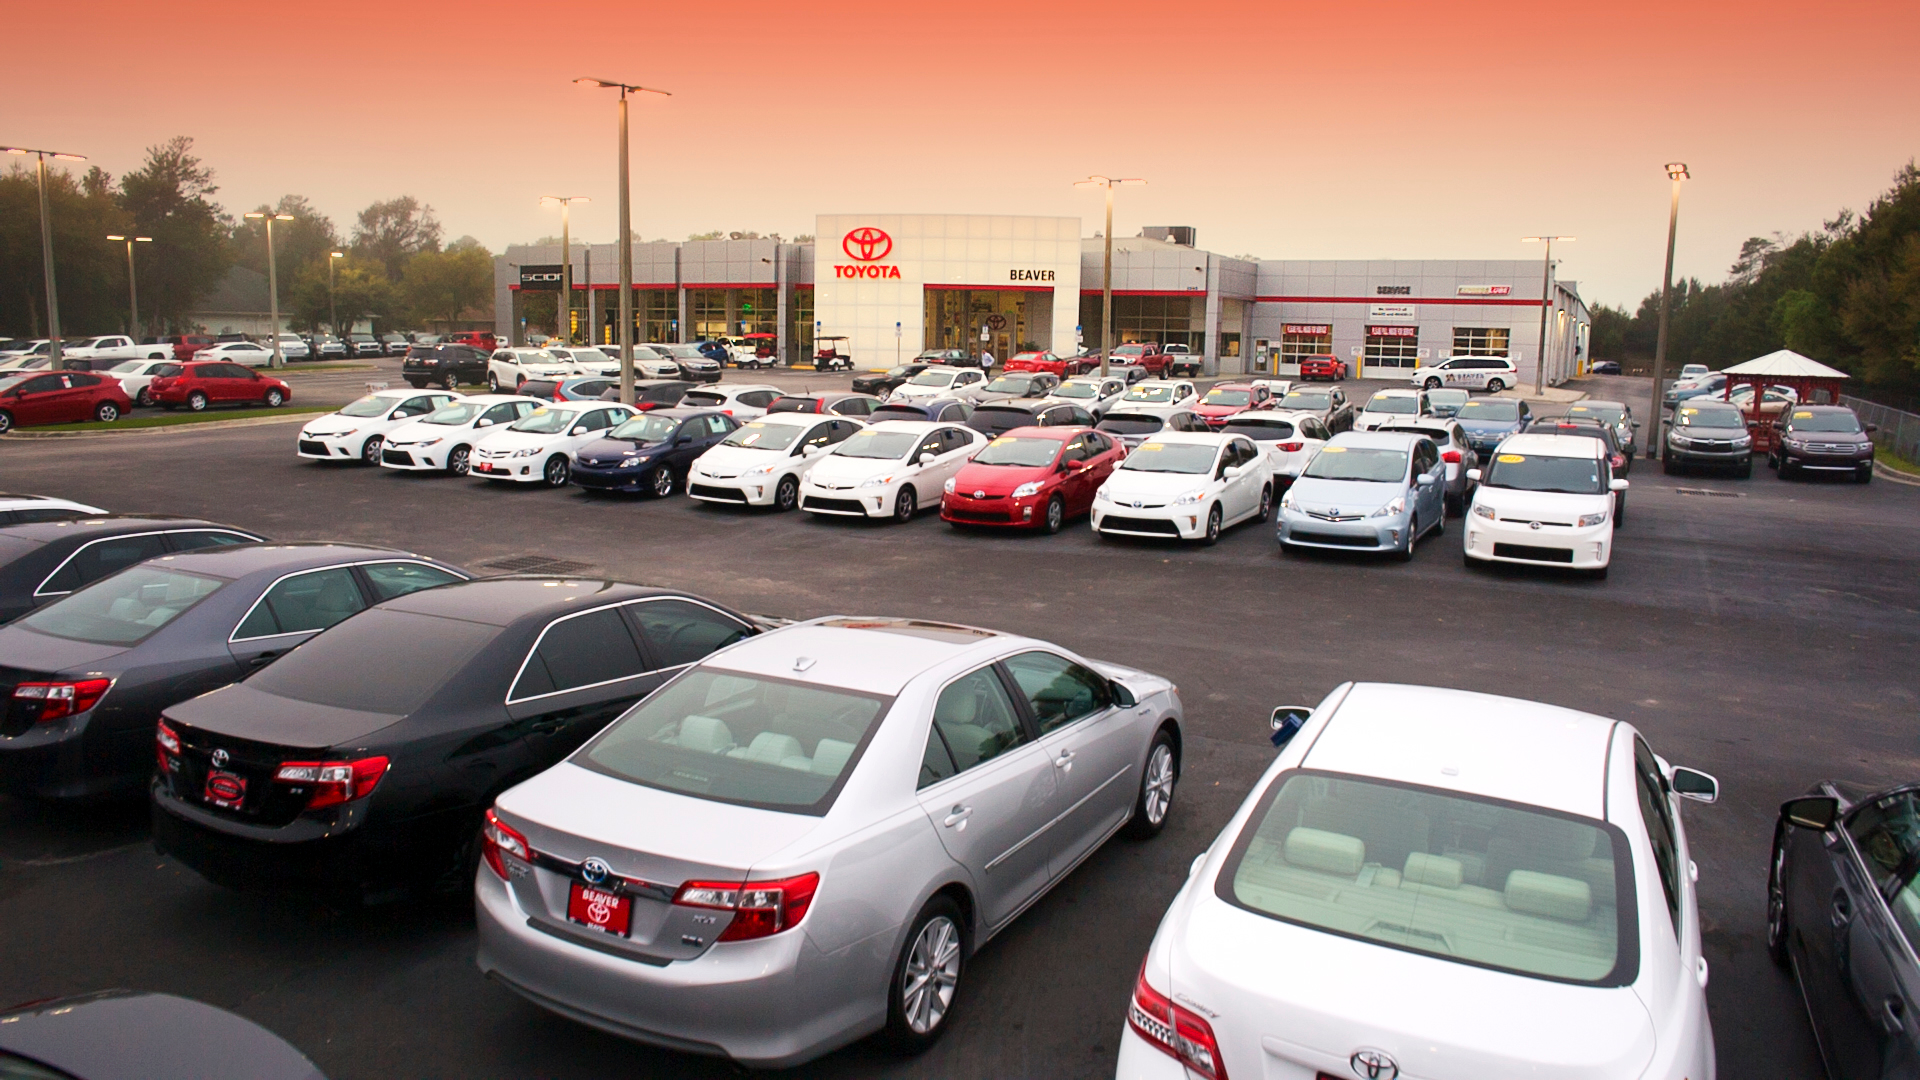 Toyota Dealership In Jacksonville Fl >> Beaver Toyota St Augustine Fl New And Used Car Dealer | Autos Post